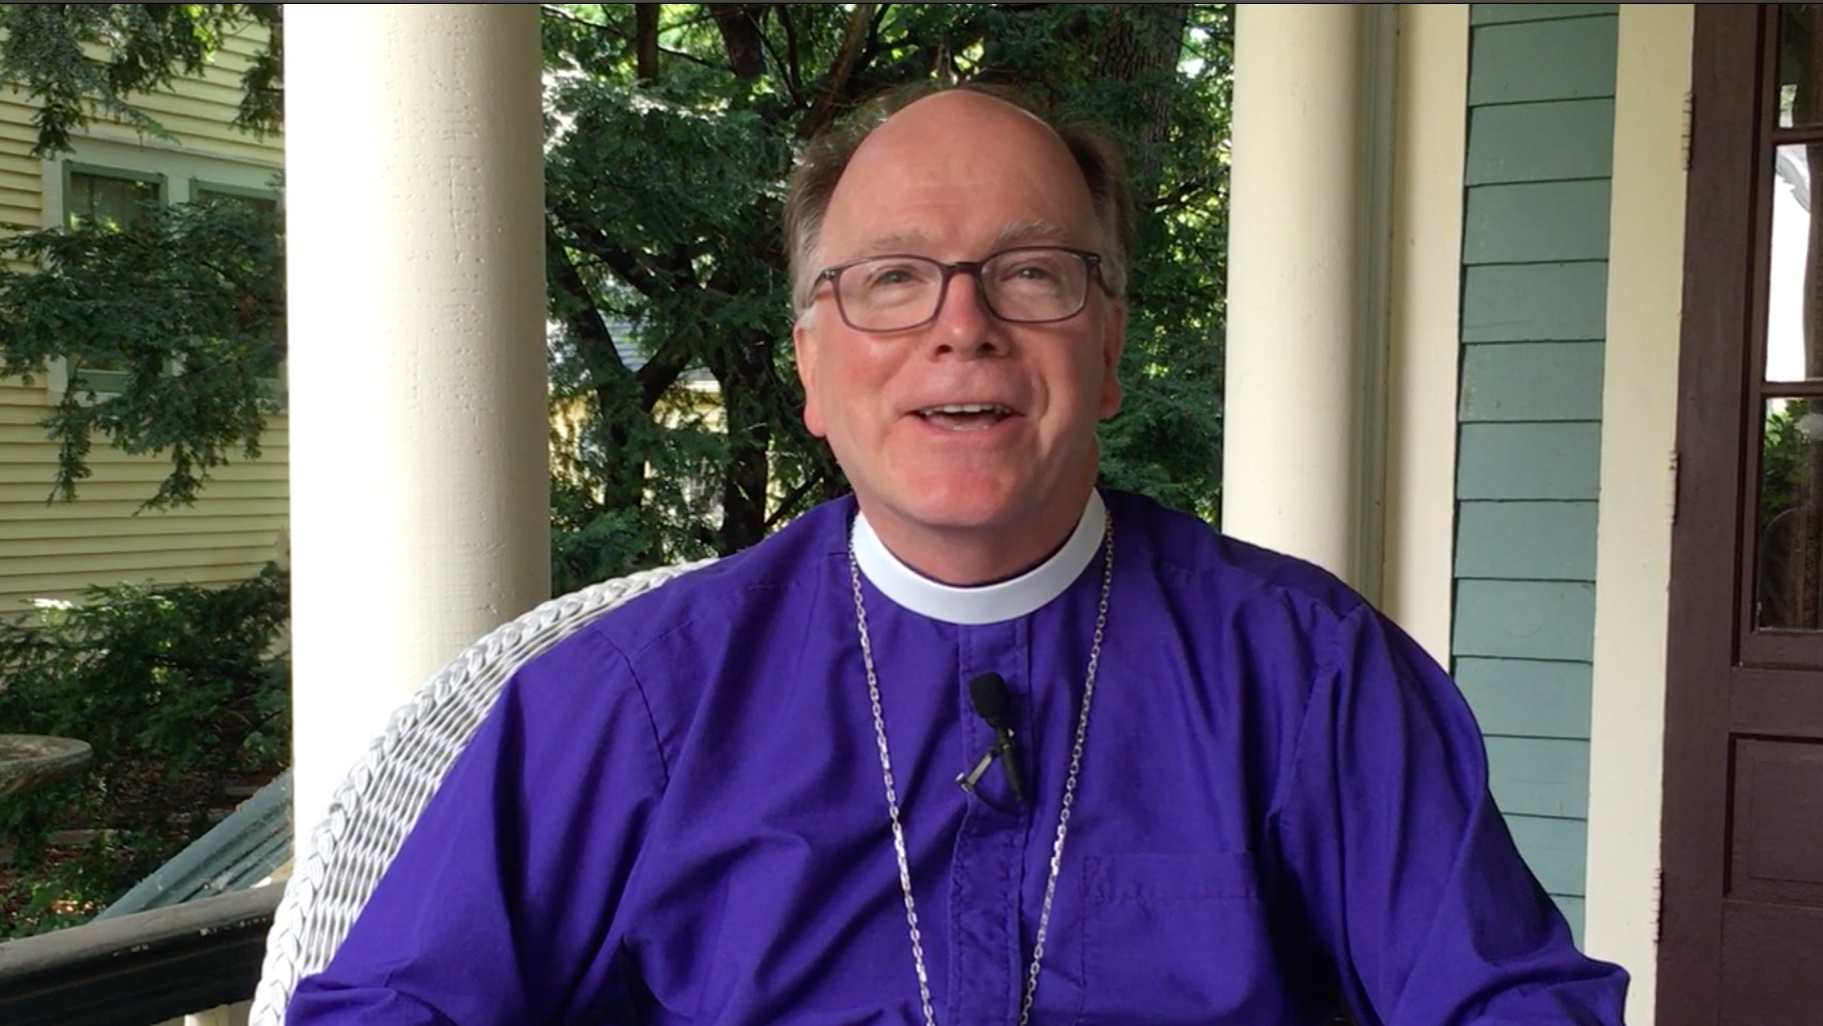 A Video Message from Bishop Doug